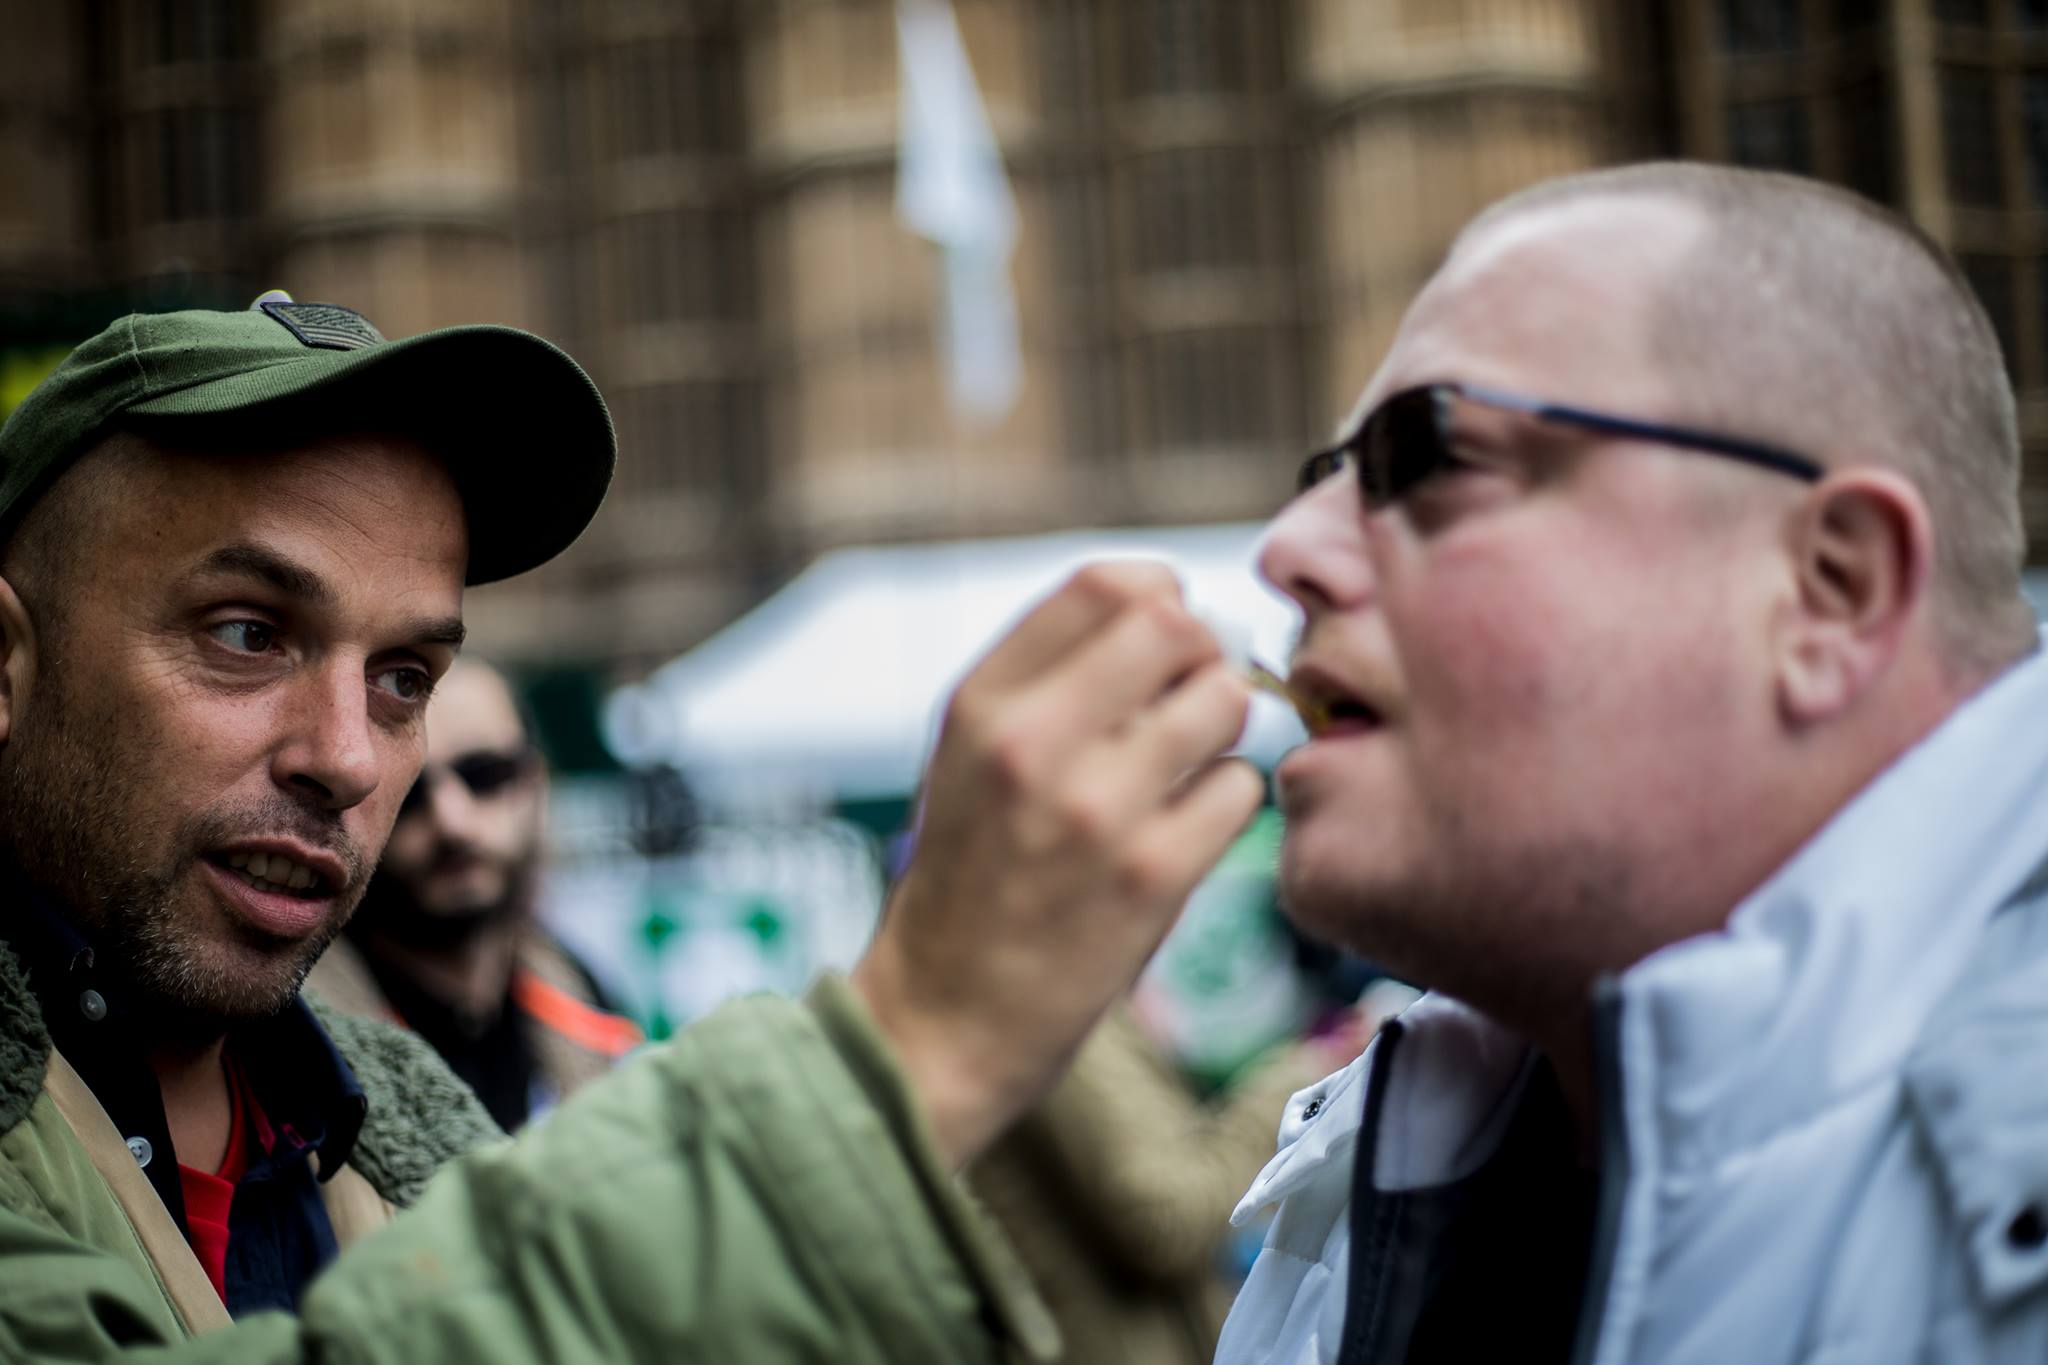 Medical cannabis patients and activists outside London